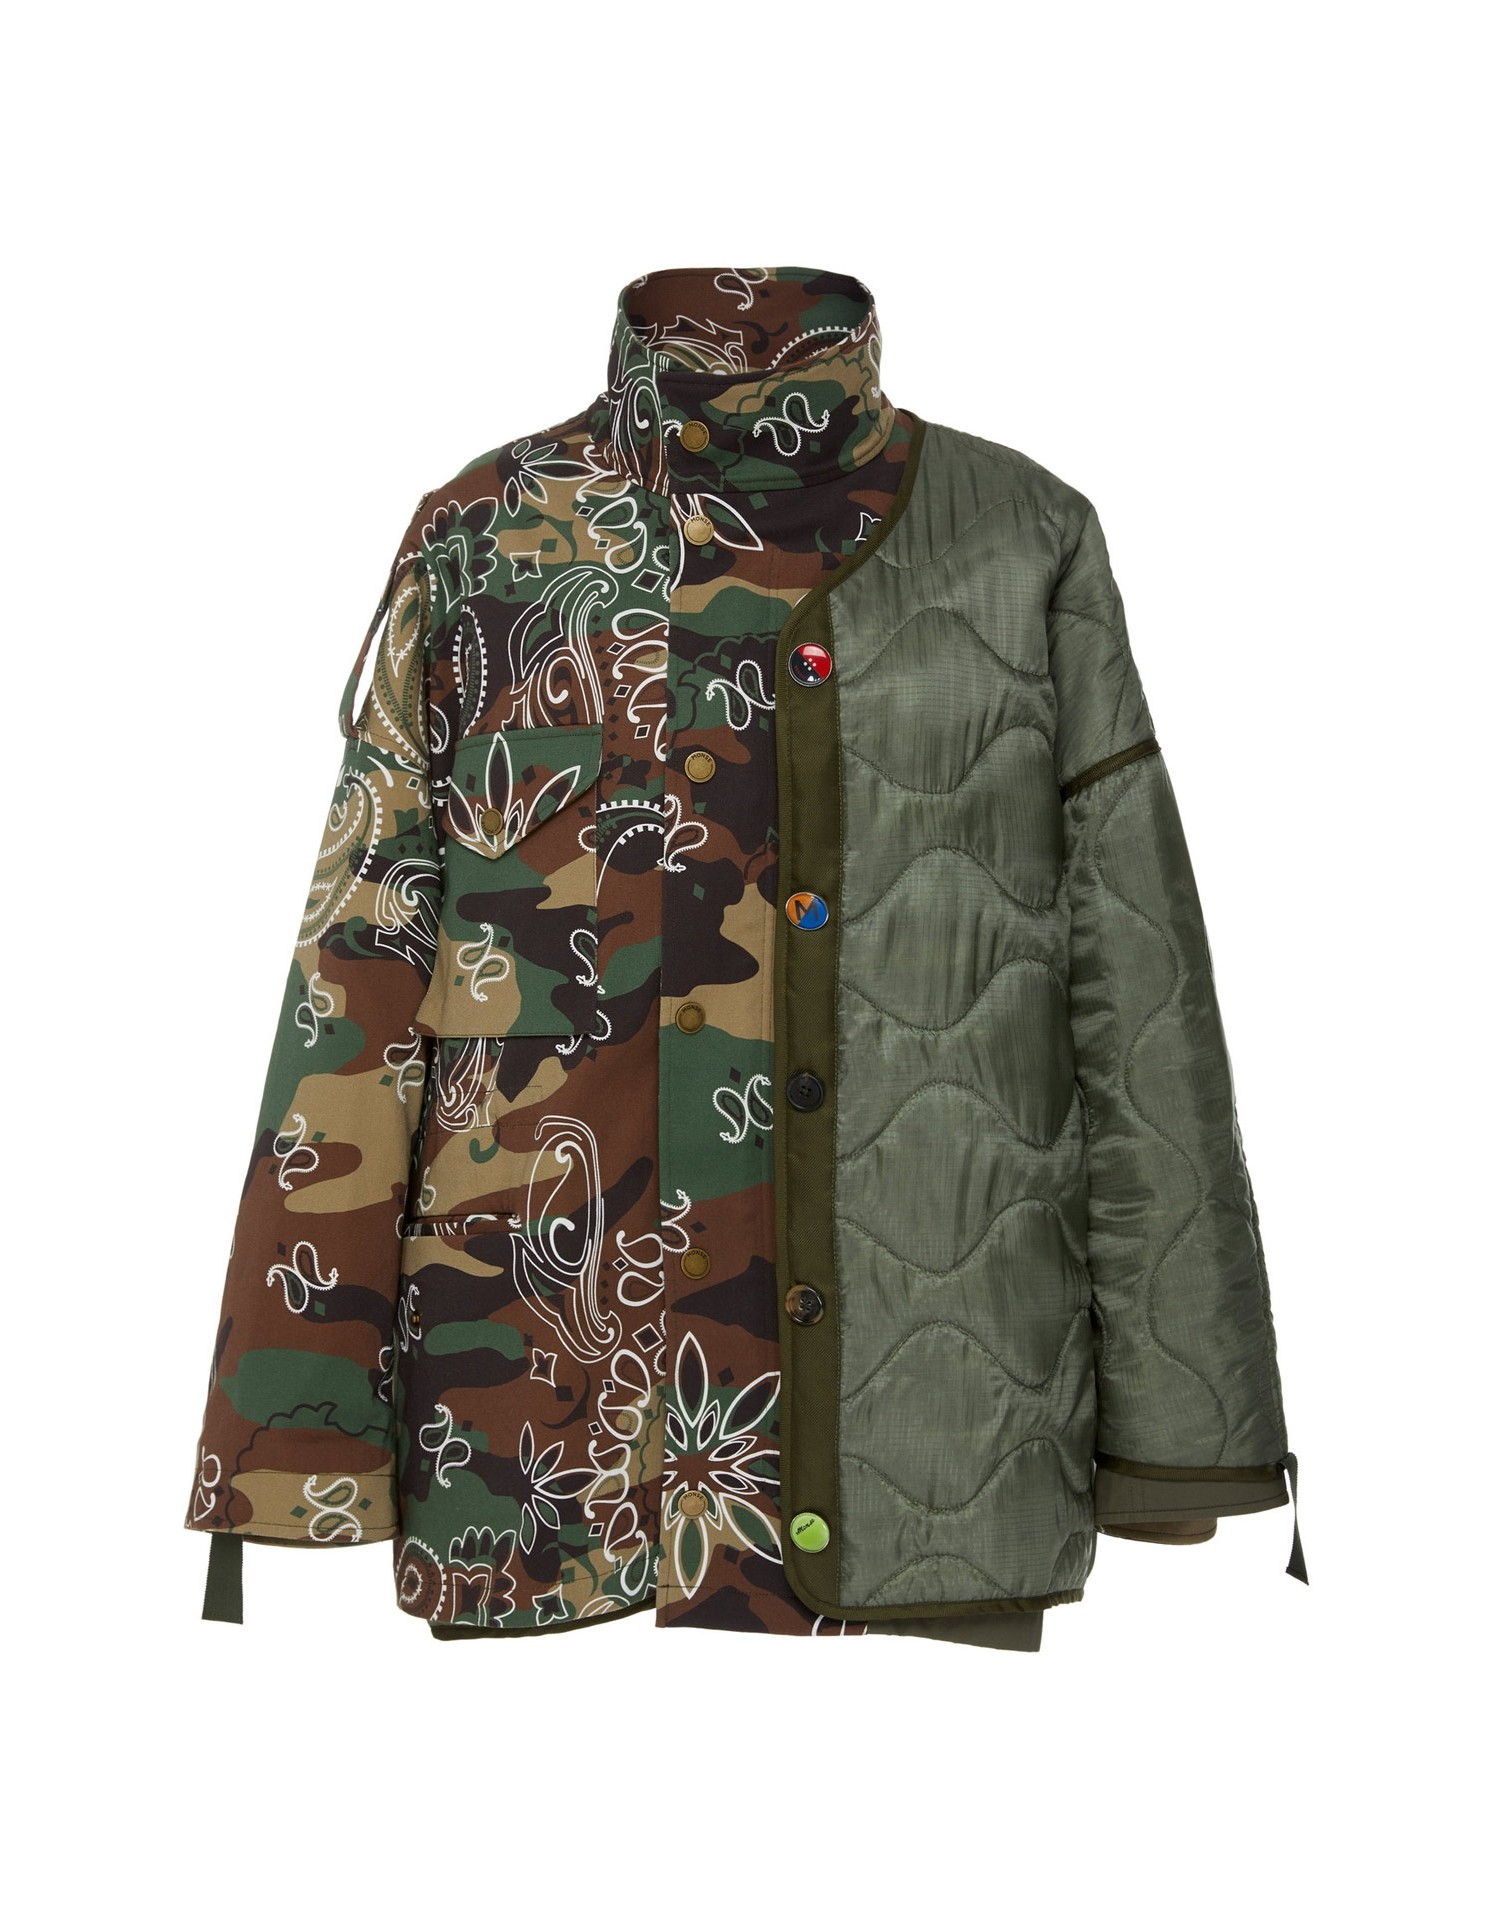 MONSE Oversized Double Camo Jacket on Model Front View